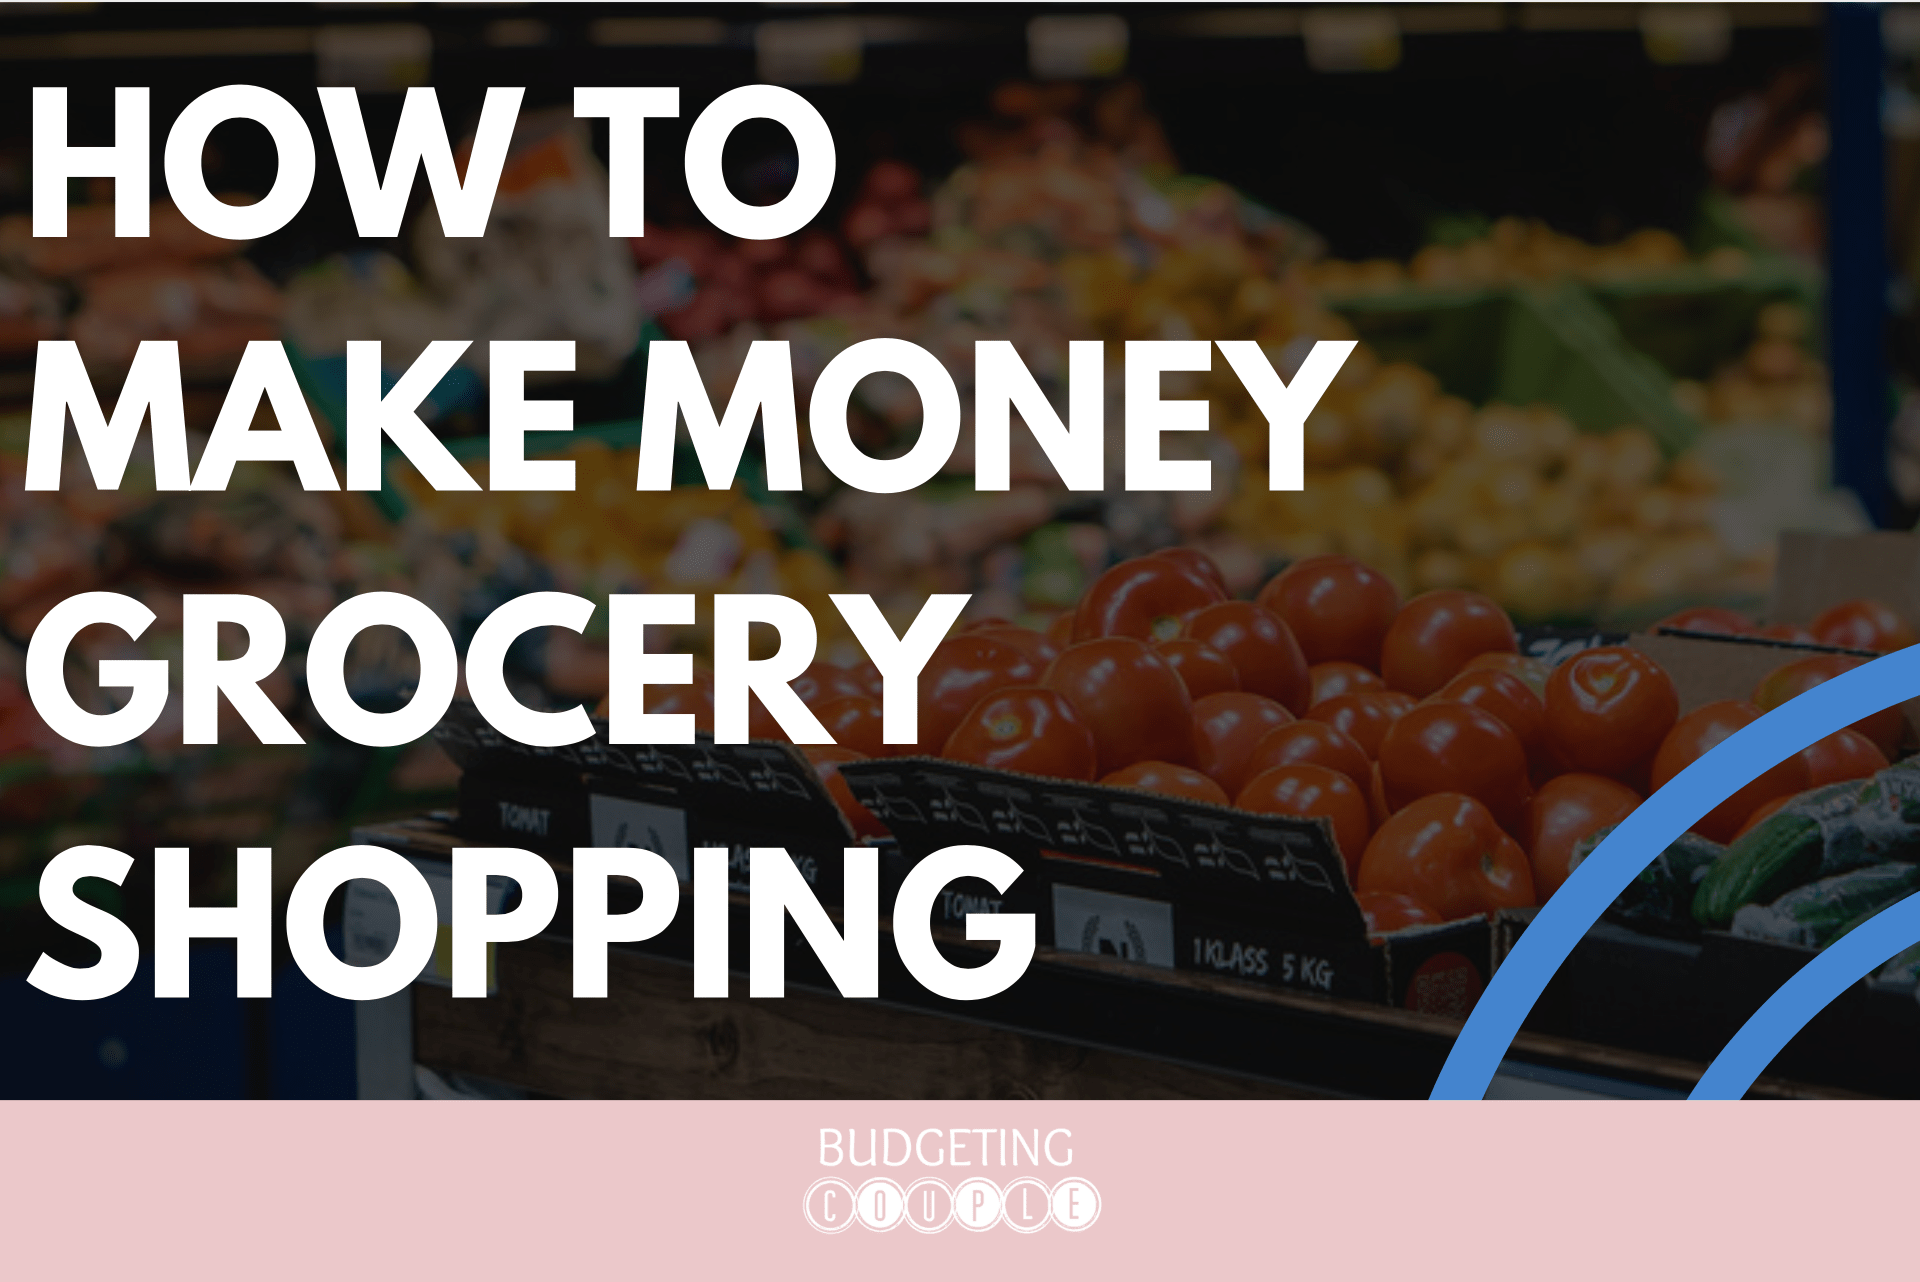 make money, cash back, save money, how to make money grocery shopping, money saving tips, save money, frugal living, living frugal